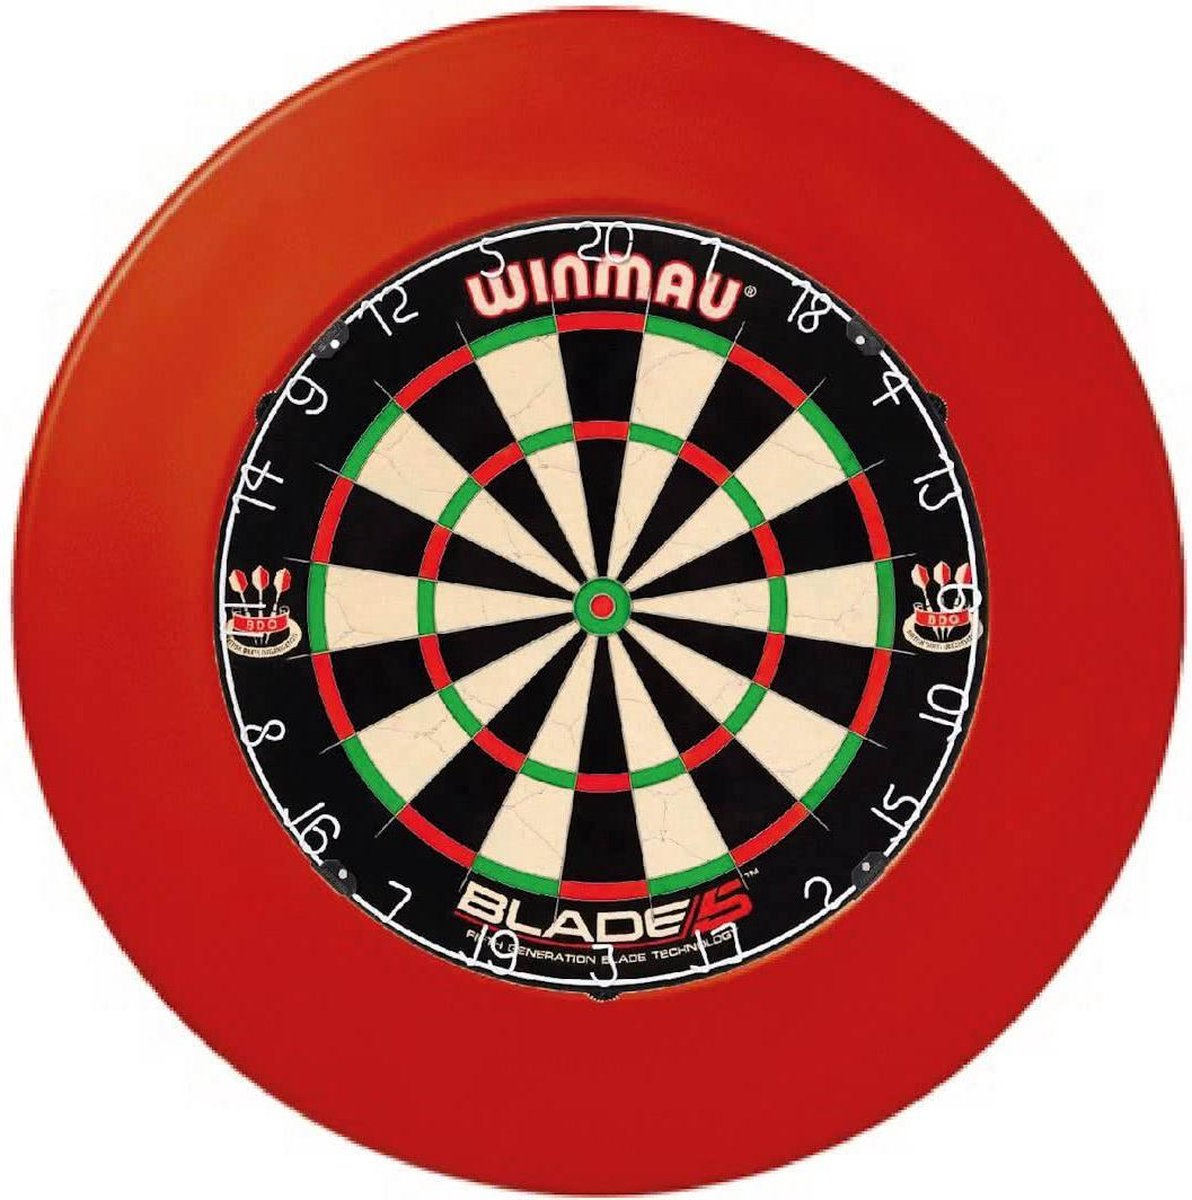 Winmau Blade 5 met Rubberen Dartbord Surround Ring Rood en ABC Darts scorebord